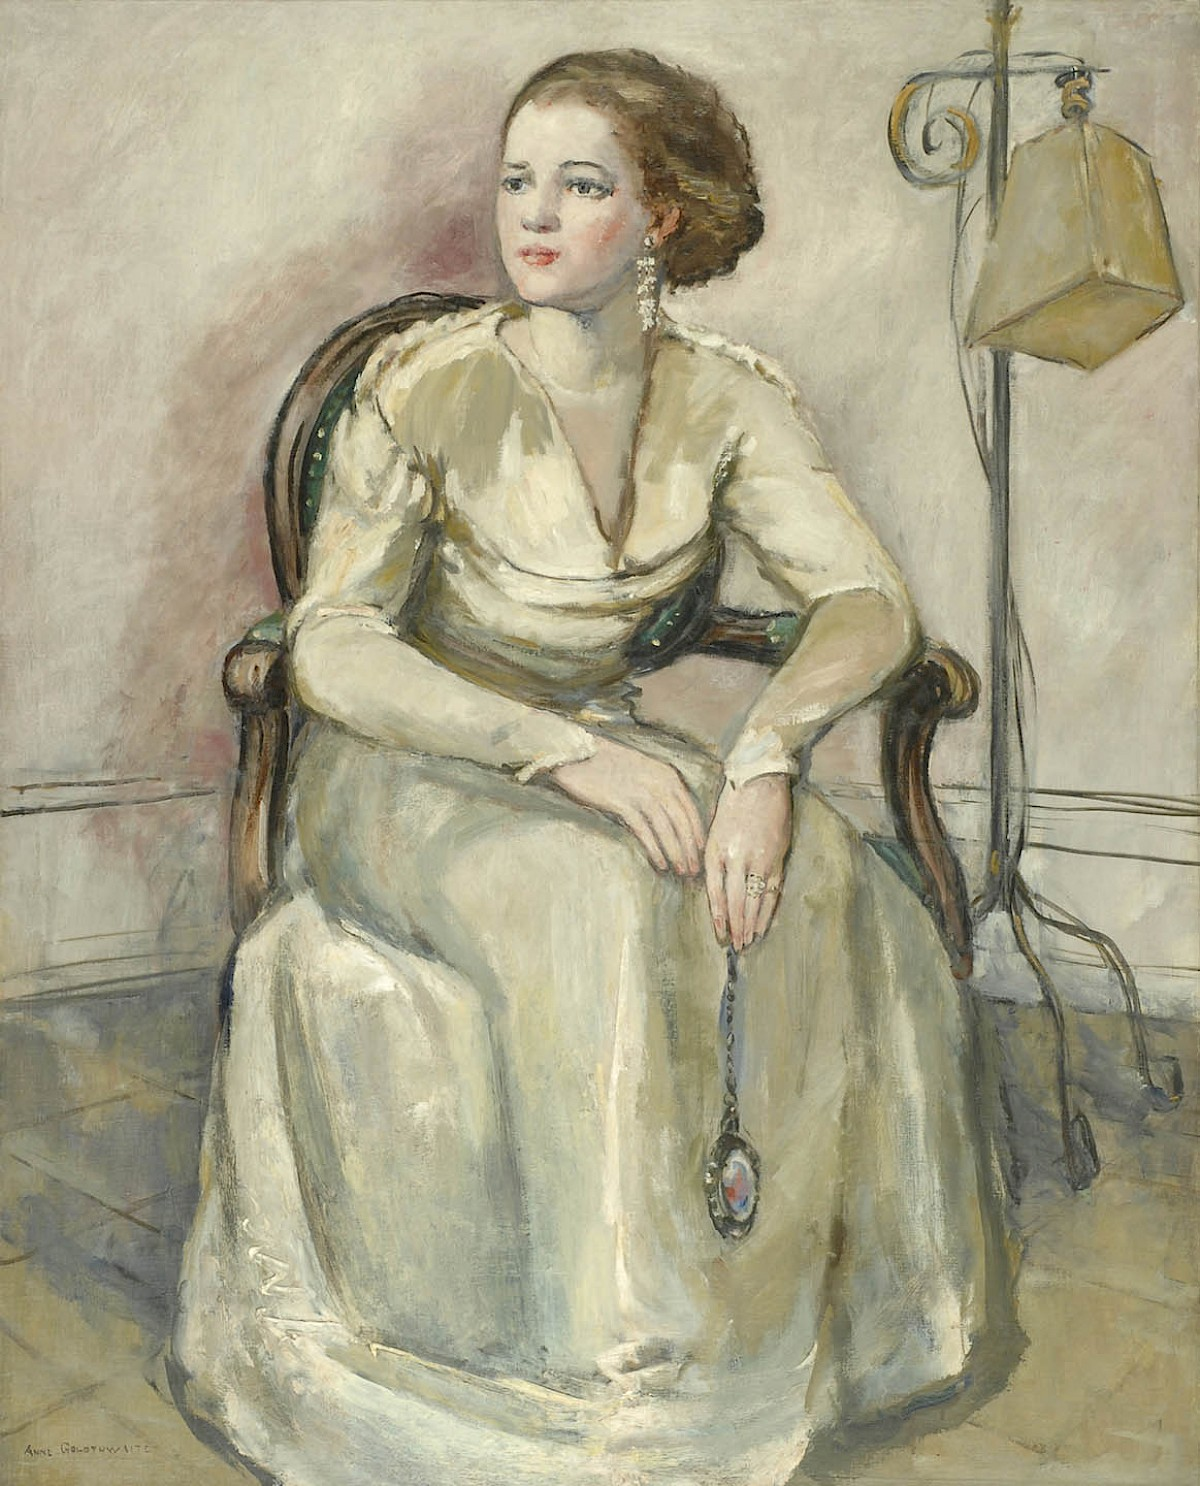 Kate Steinle Death Mexican Man Acquitted Of Murder: Portrait Of Frances Greene Nix, 1940